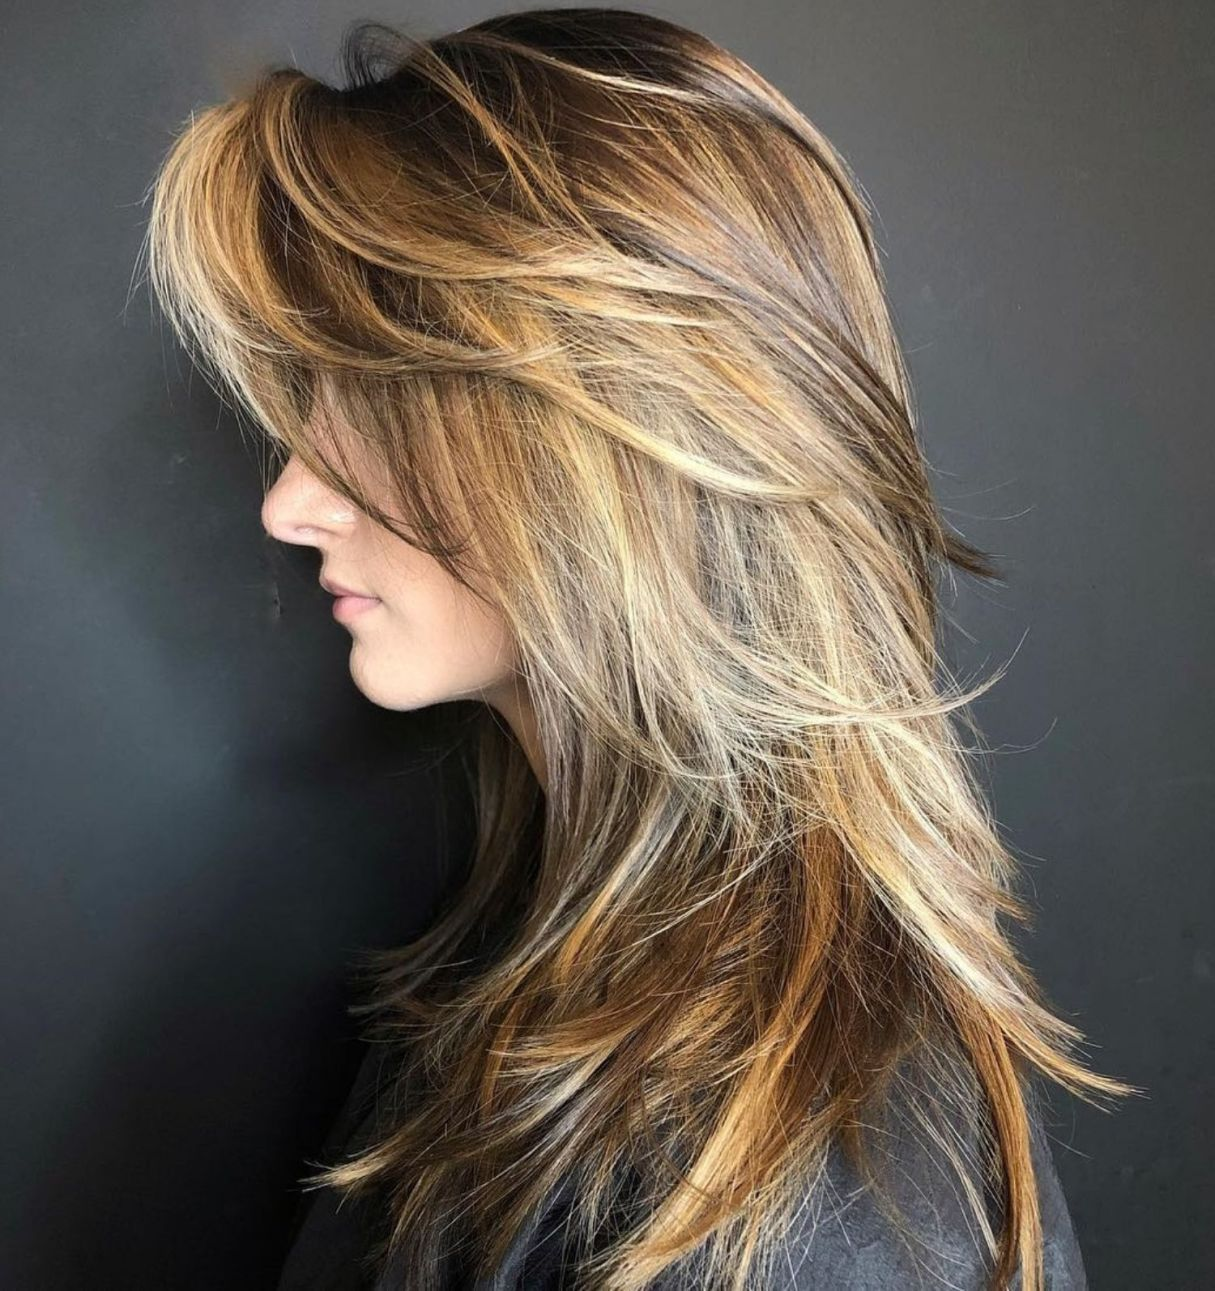 20+ Hairstyles Long Layers Bangs in 2020 | Long layered haircuts, Layered  hair with bangs, Thick hair styles